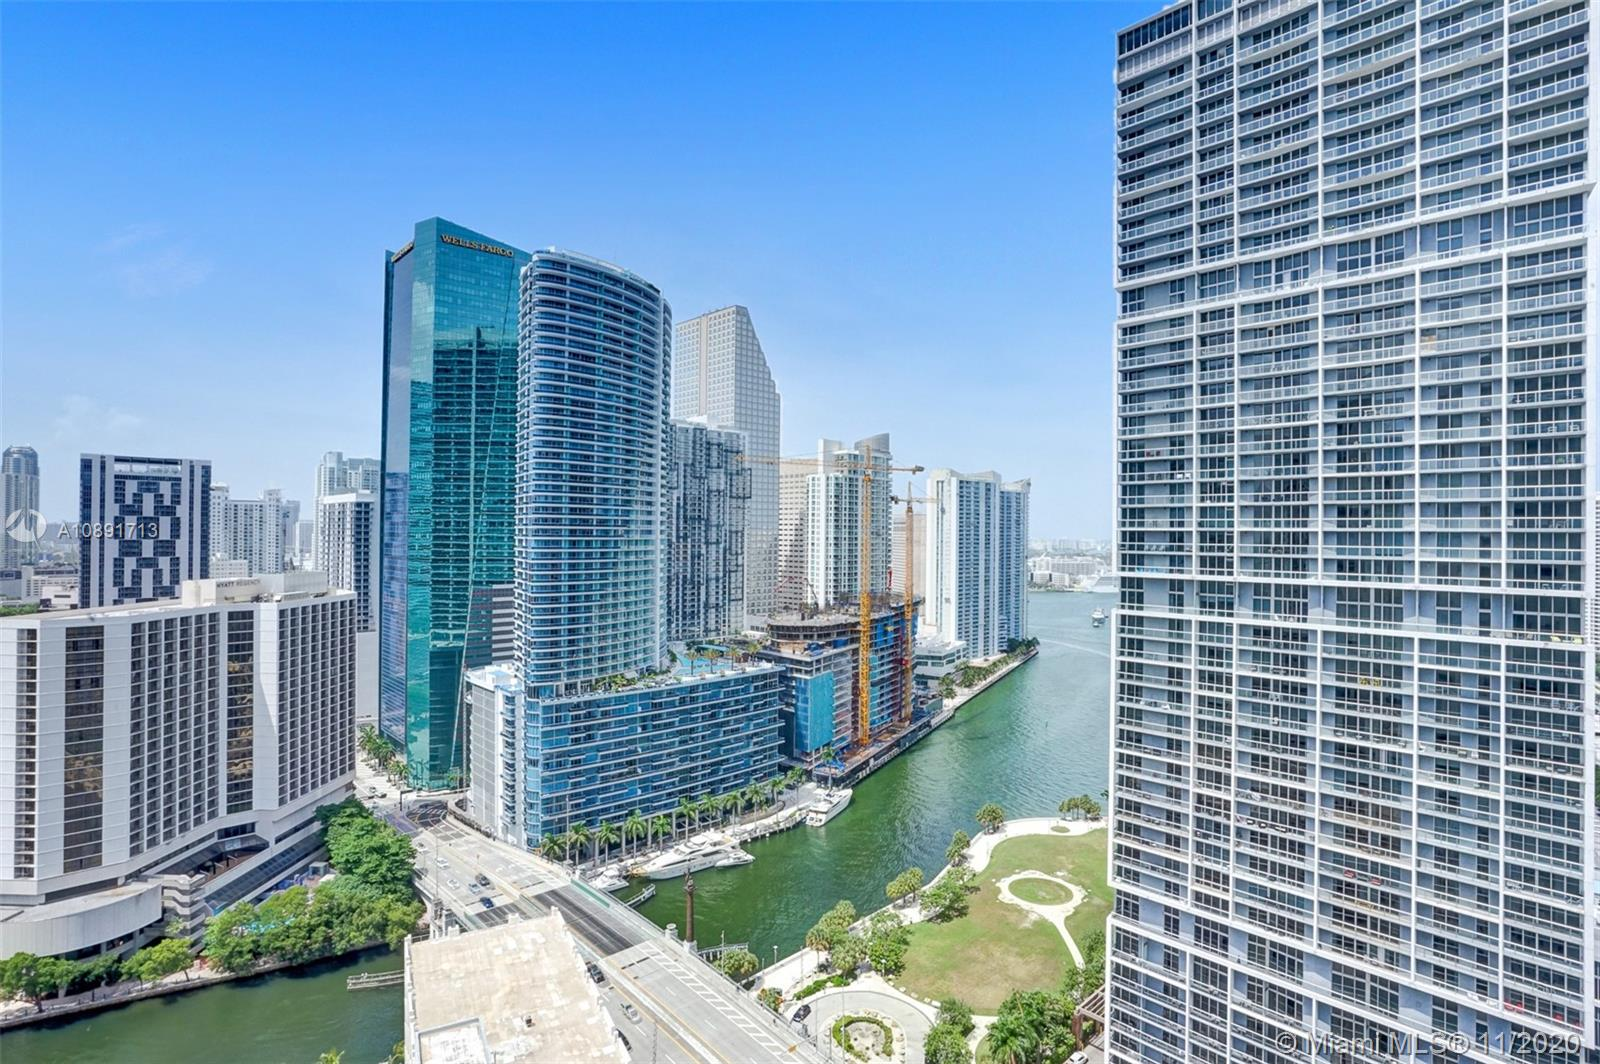 500 Brickell West Tower #3205 - 500 Brickell Ave #3205, Miami, FL 33131